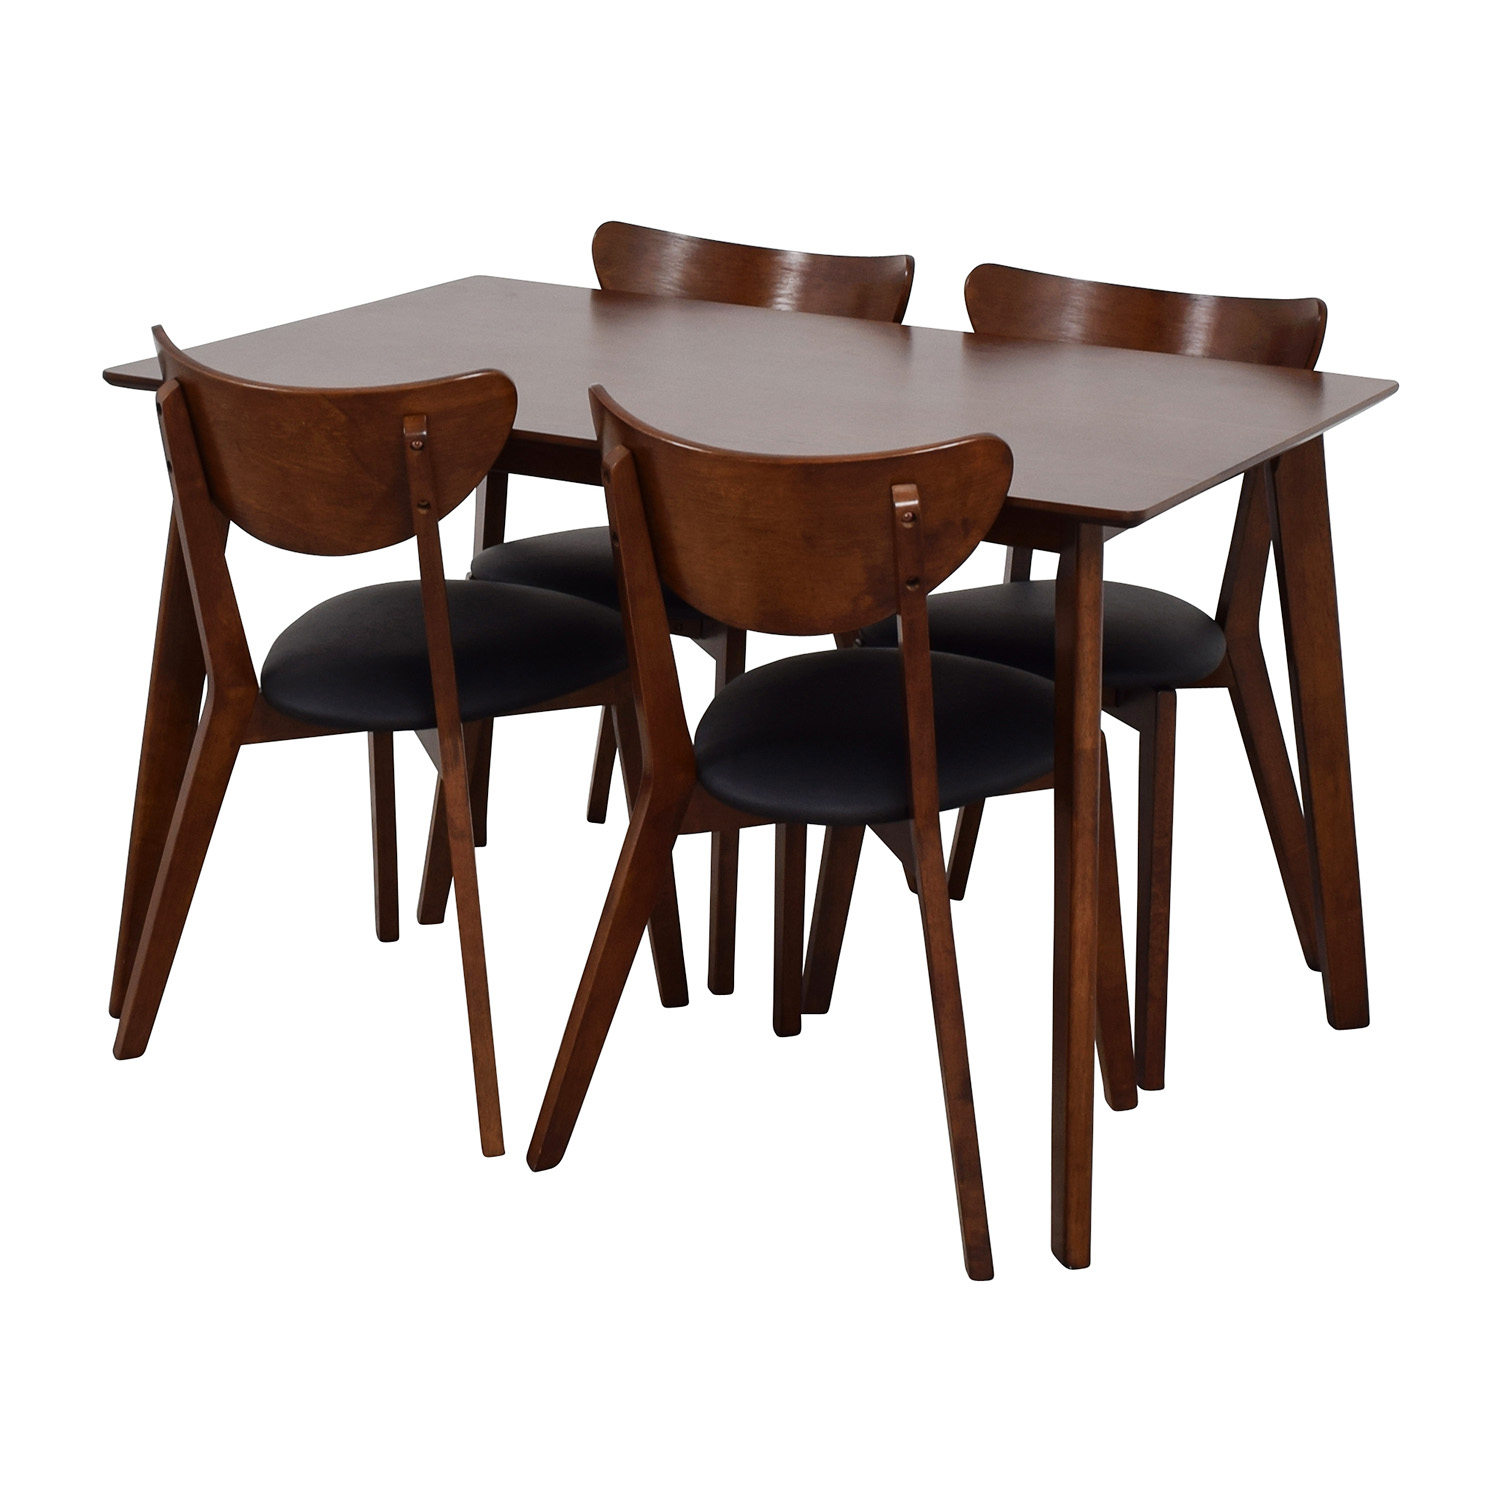 35 Off Wholesale Interiors Brown Dining Table Set With Four Chairs Tables